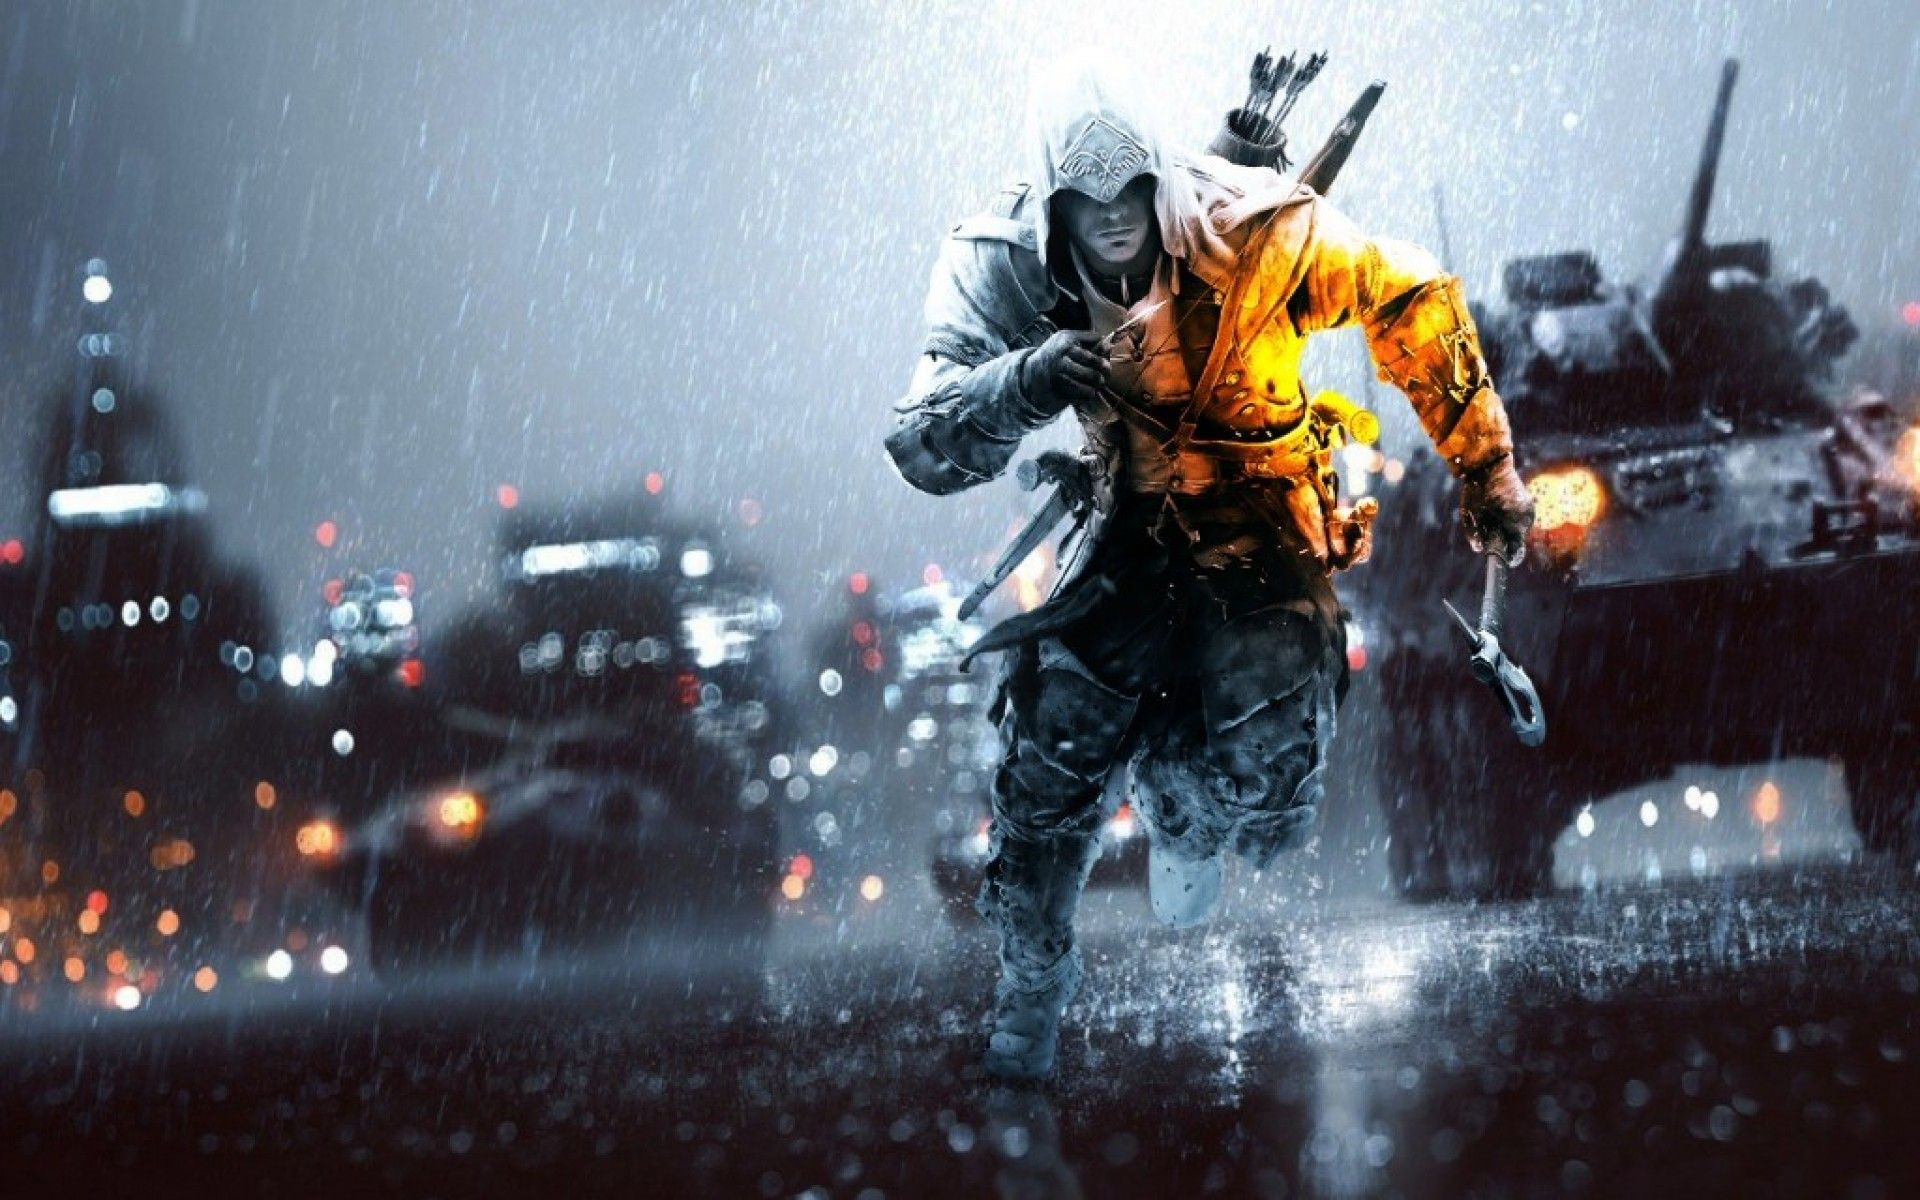 Battlefield hd wallpapers backgrounds wallpaper 19201080 battlefield hd wallpapers backgrounds wallpaper 19201080 battlefield 4 wallpaper 34 wallpapers voltagebd Images